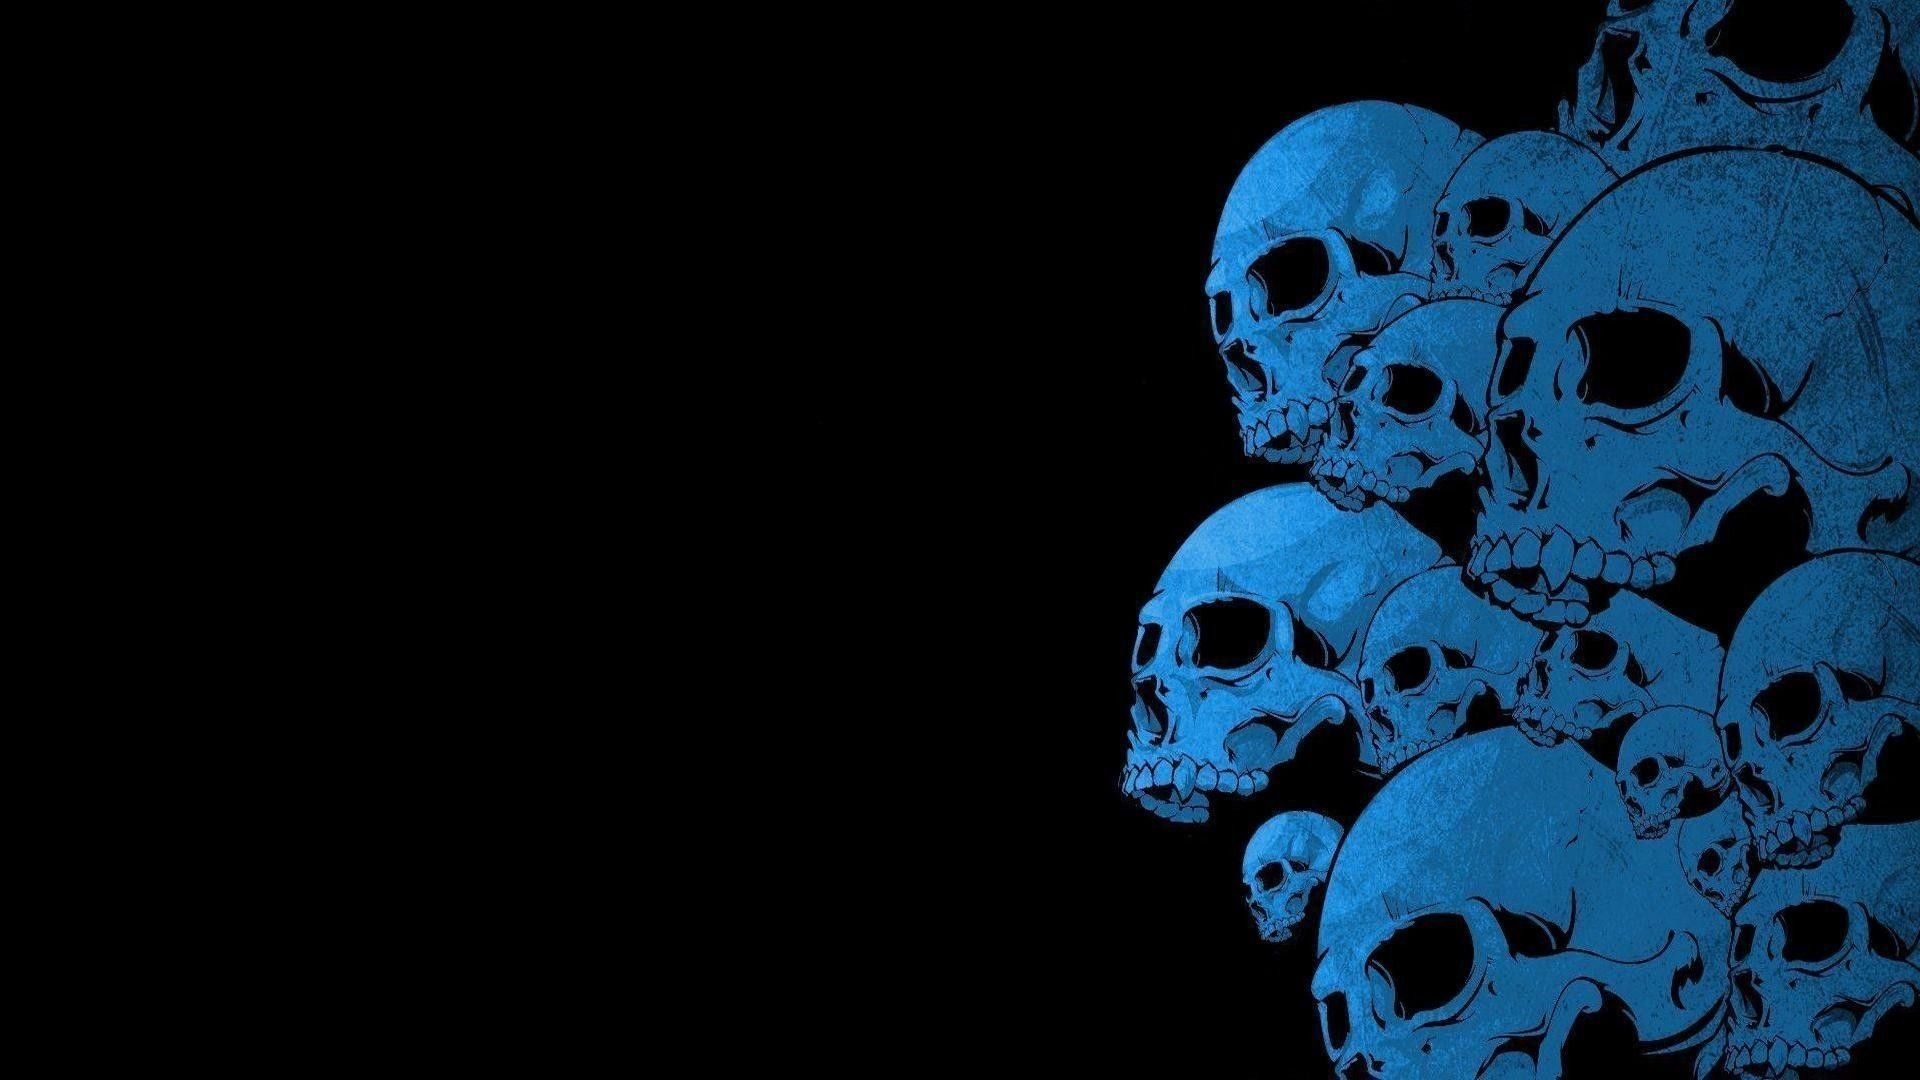 Res: 1920x1080,  Punisher Skull Graphics | Punisher Skull Pics - HD Wallpapers .